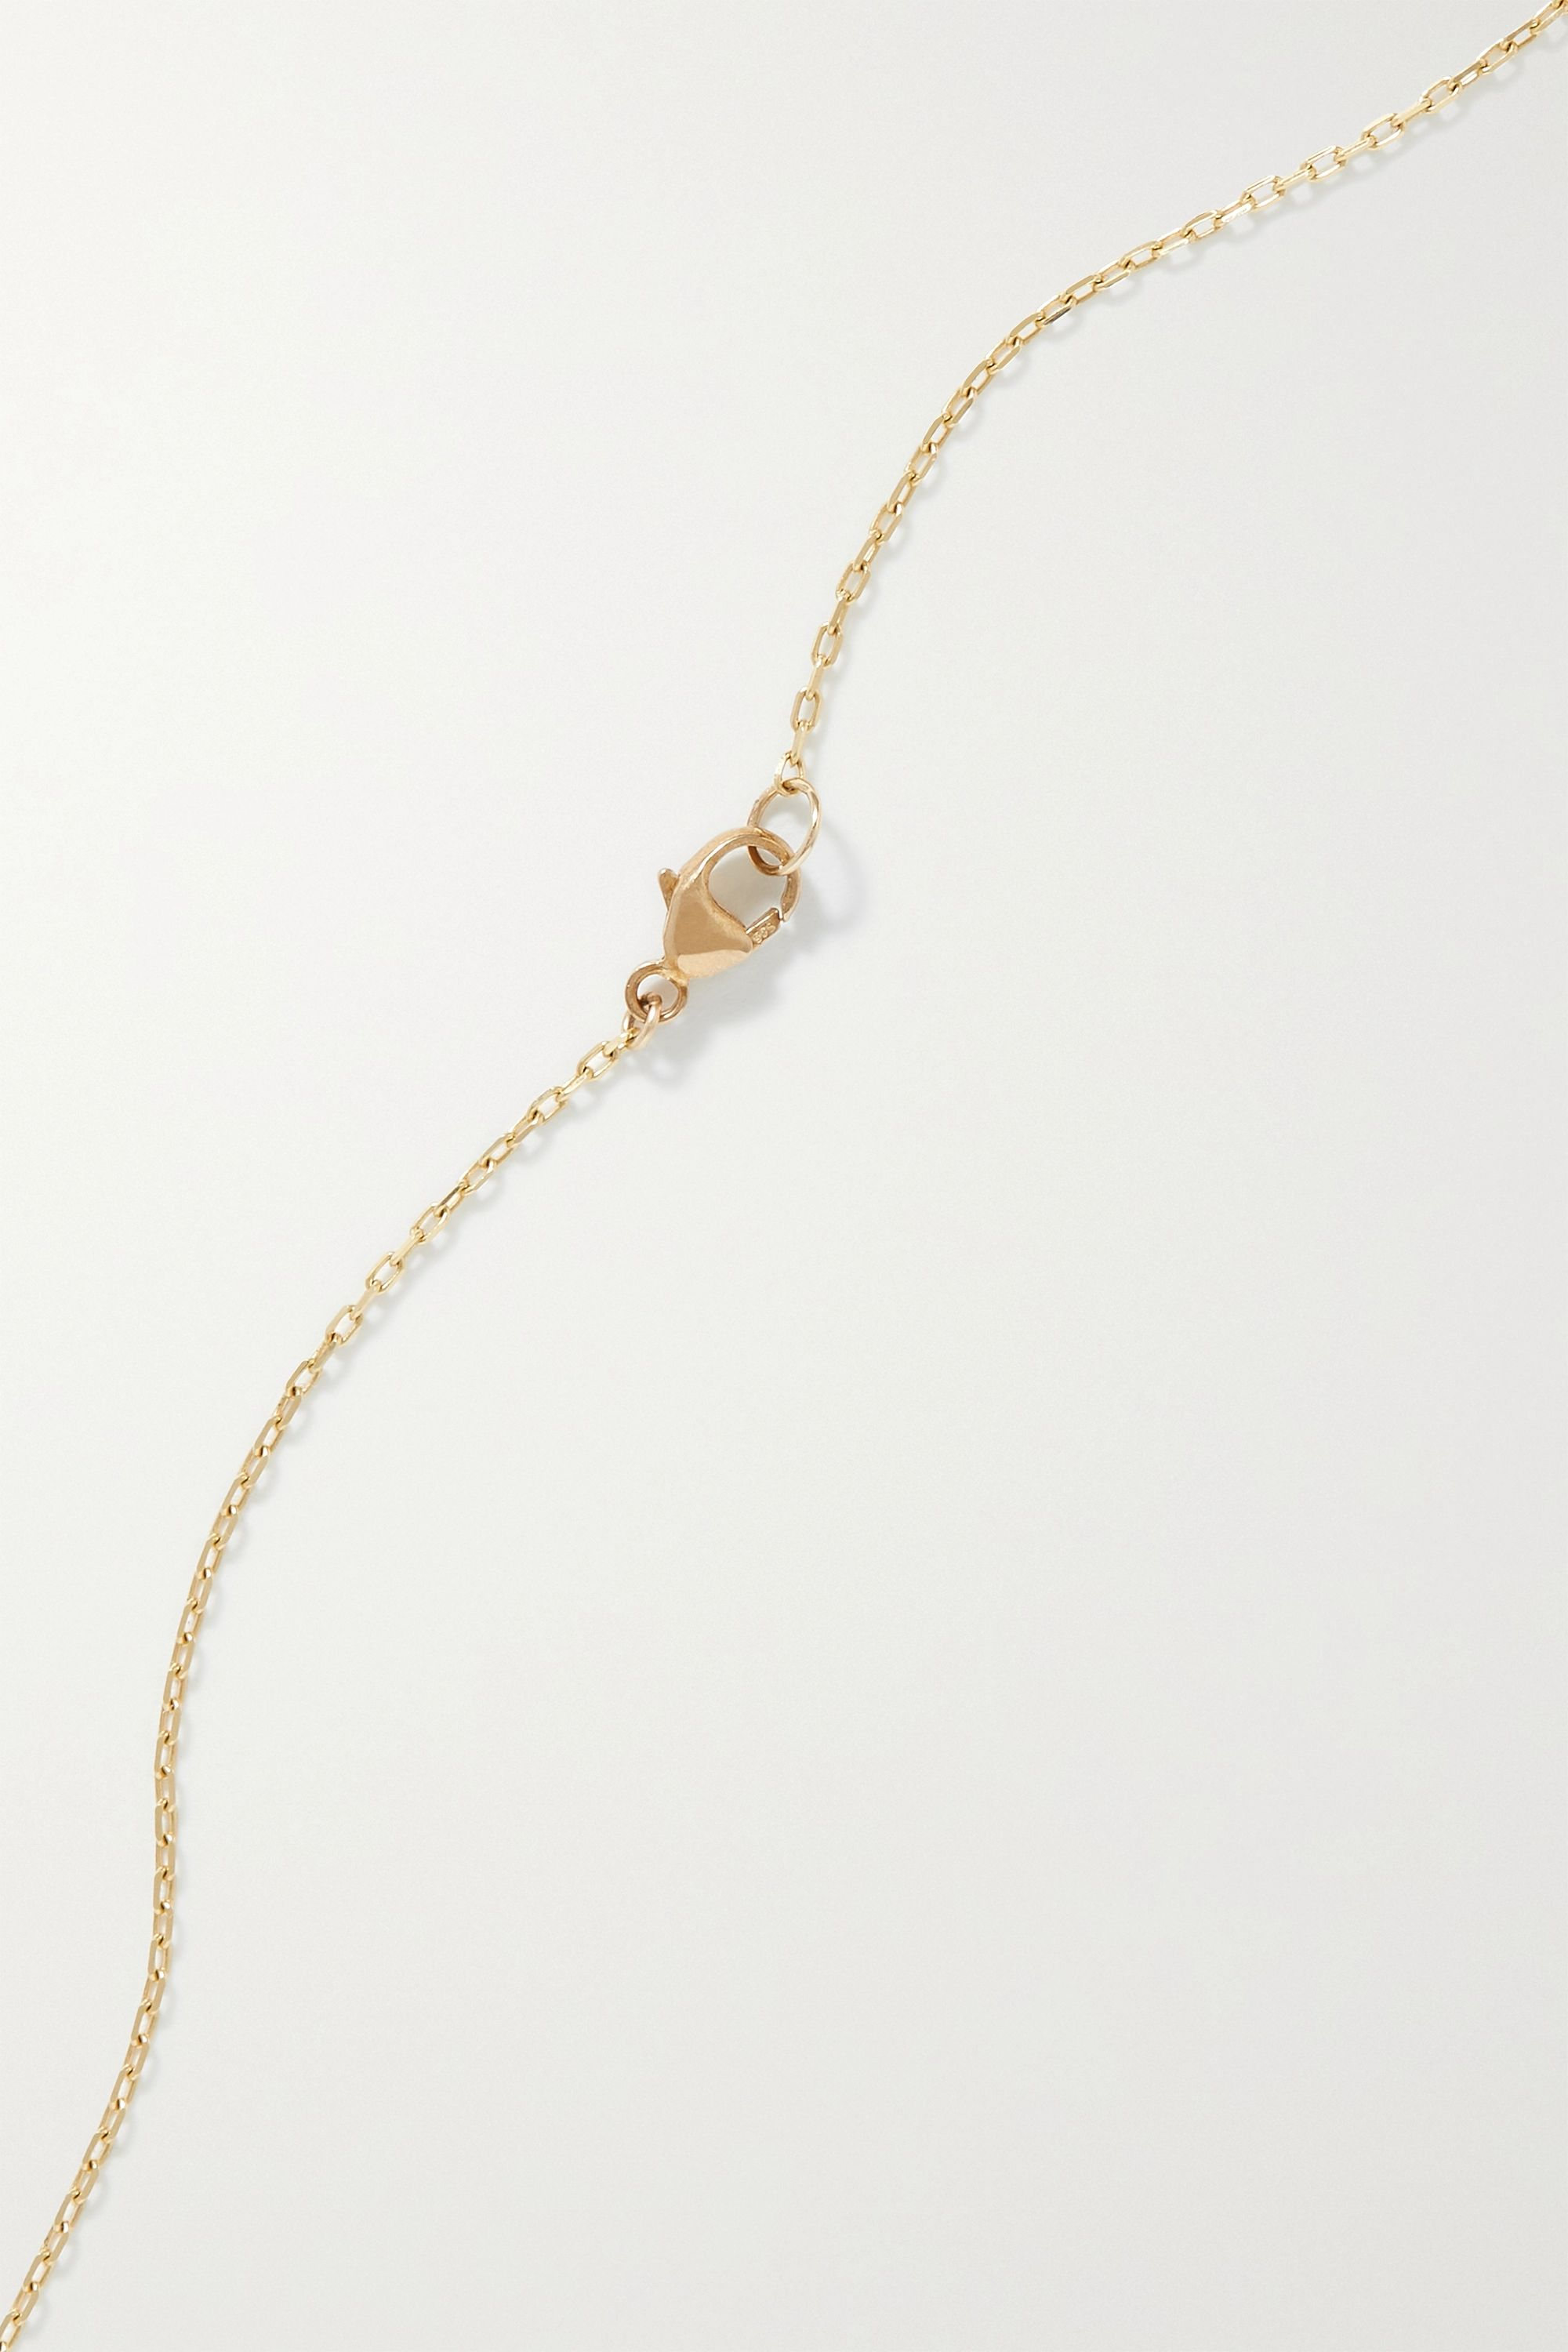 JIA JIA 14-karat gold, quartz and diamond necklace